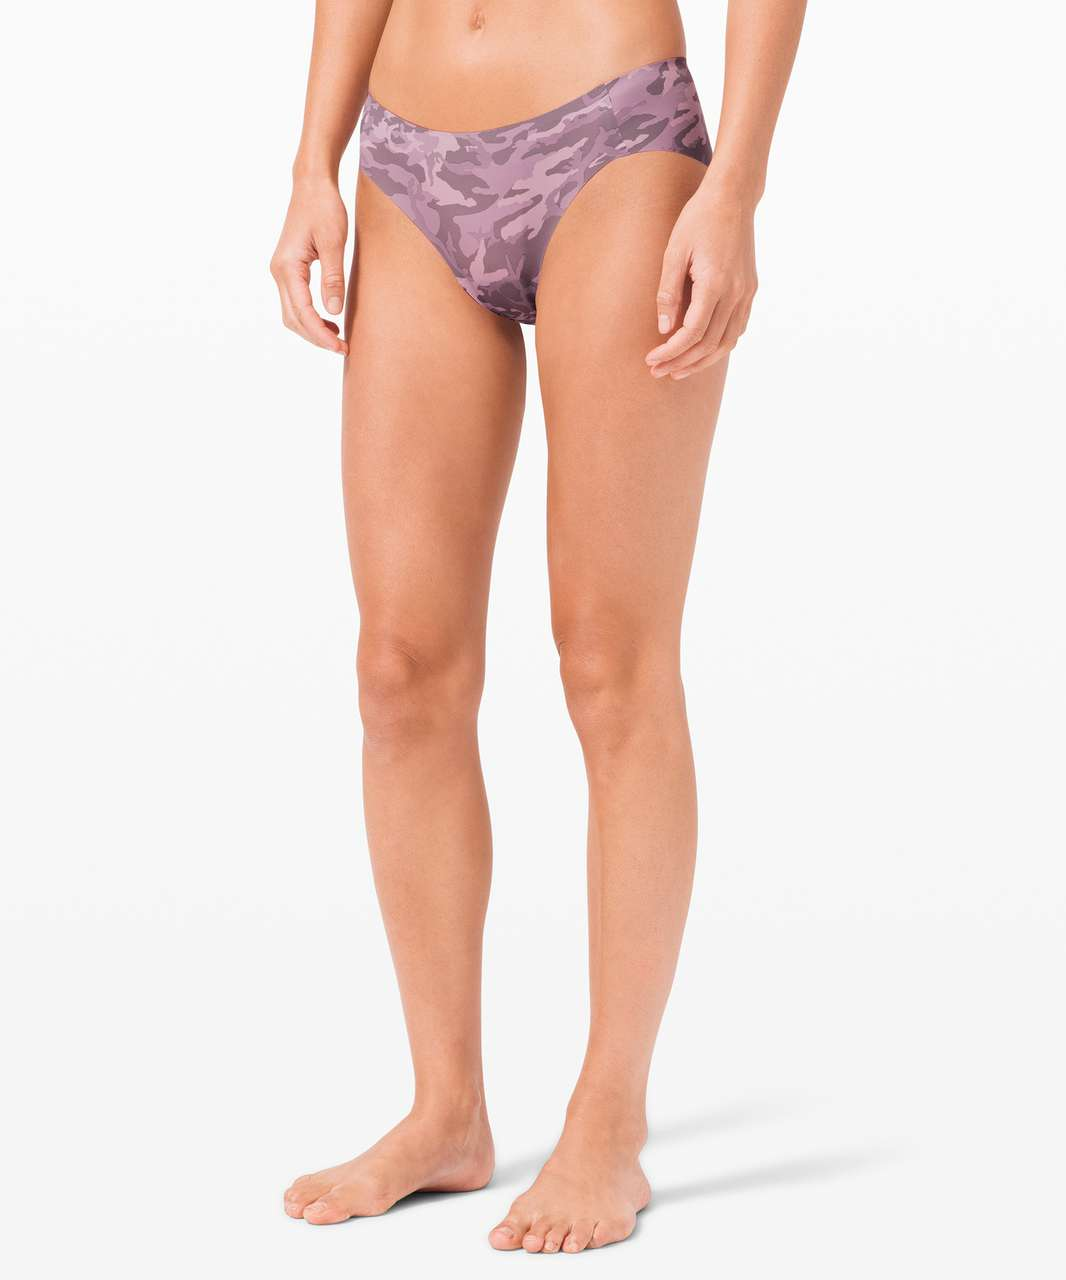 Lululemon Smooth Seamless Hipster - Incognito Camo Pink Taupe Multi